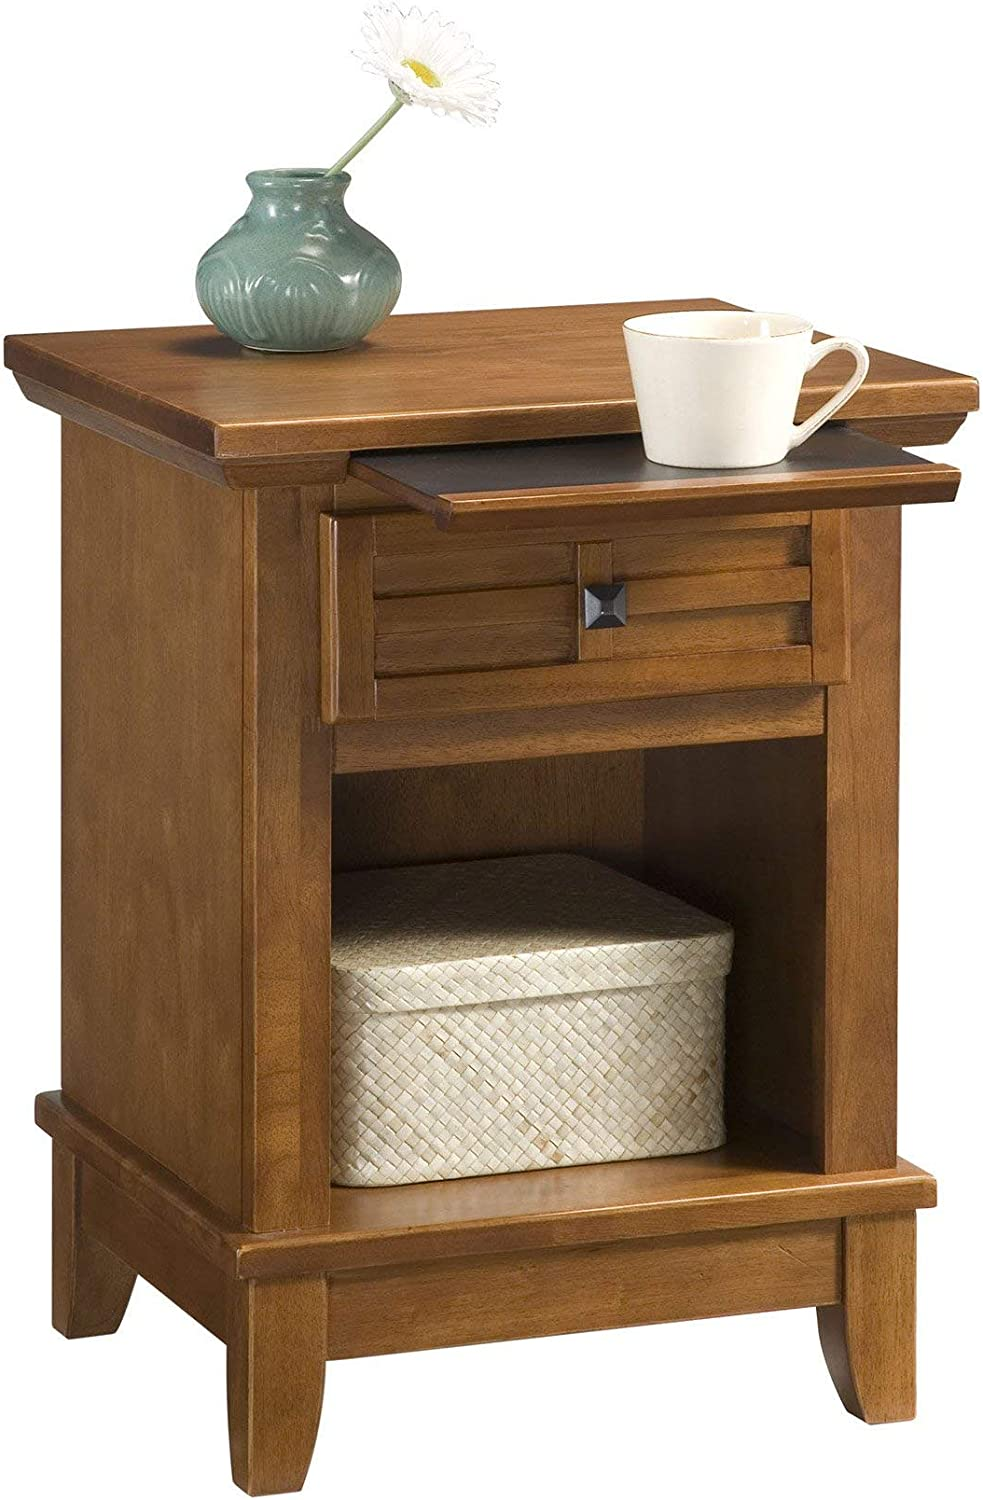 Arts & Crafts Cottage Oak Night Stand by Home Styles: Furniture & Decor